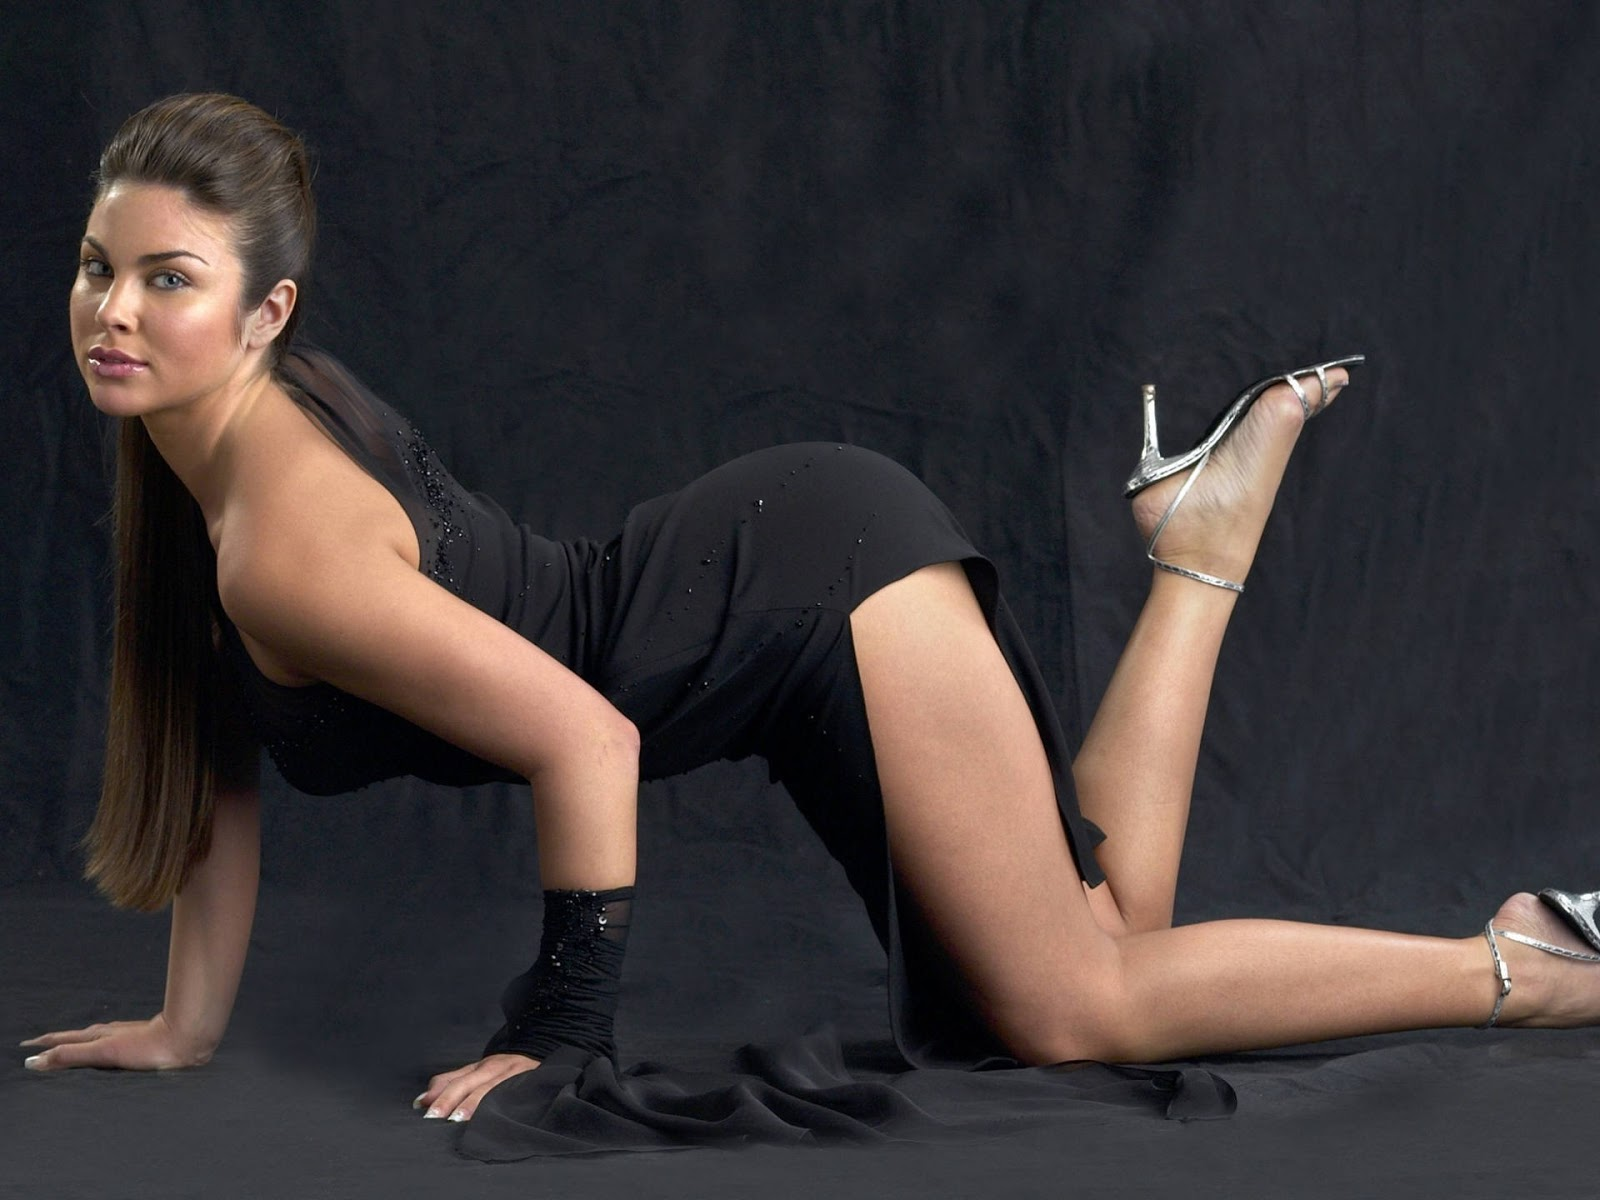 Nadia Bjorlin Pictures and Photos - ImageCollect